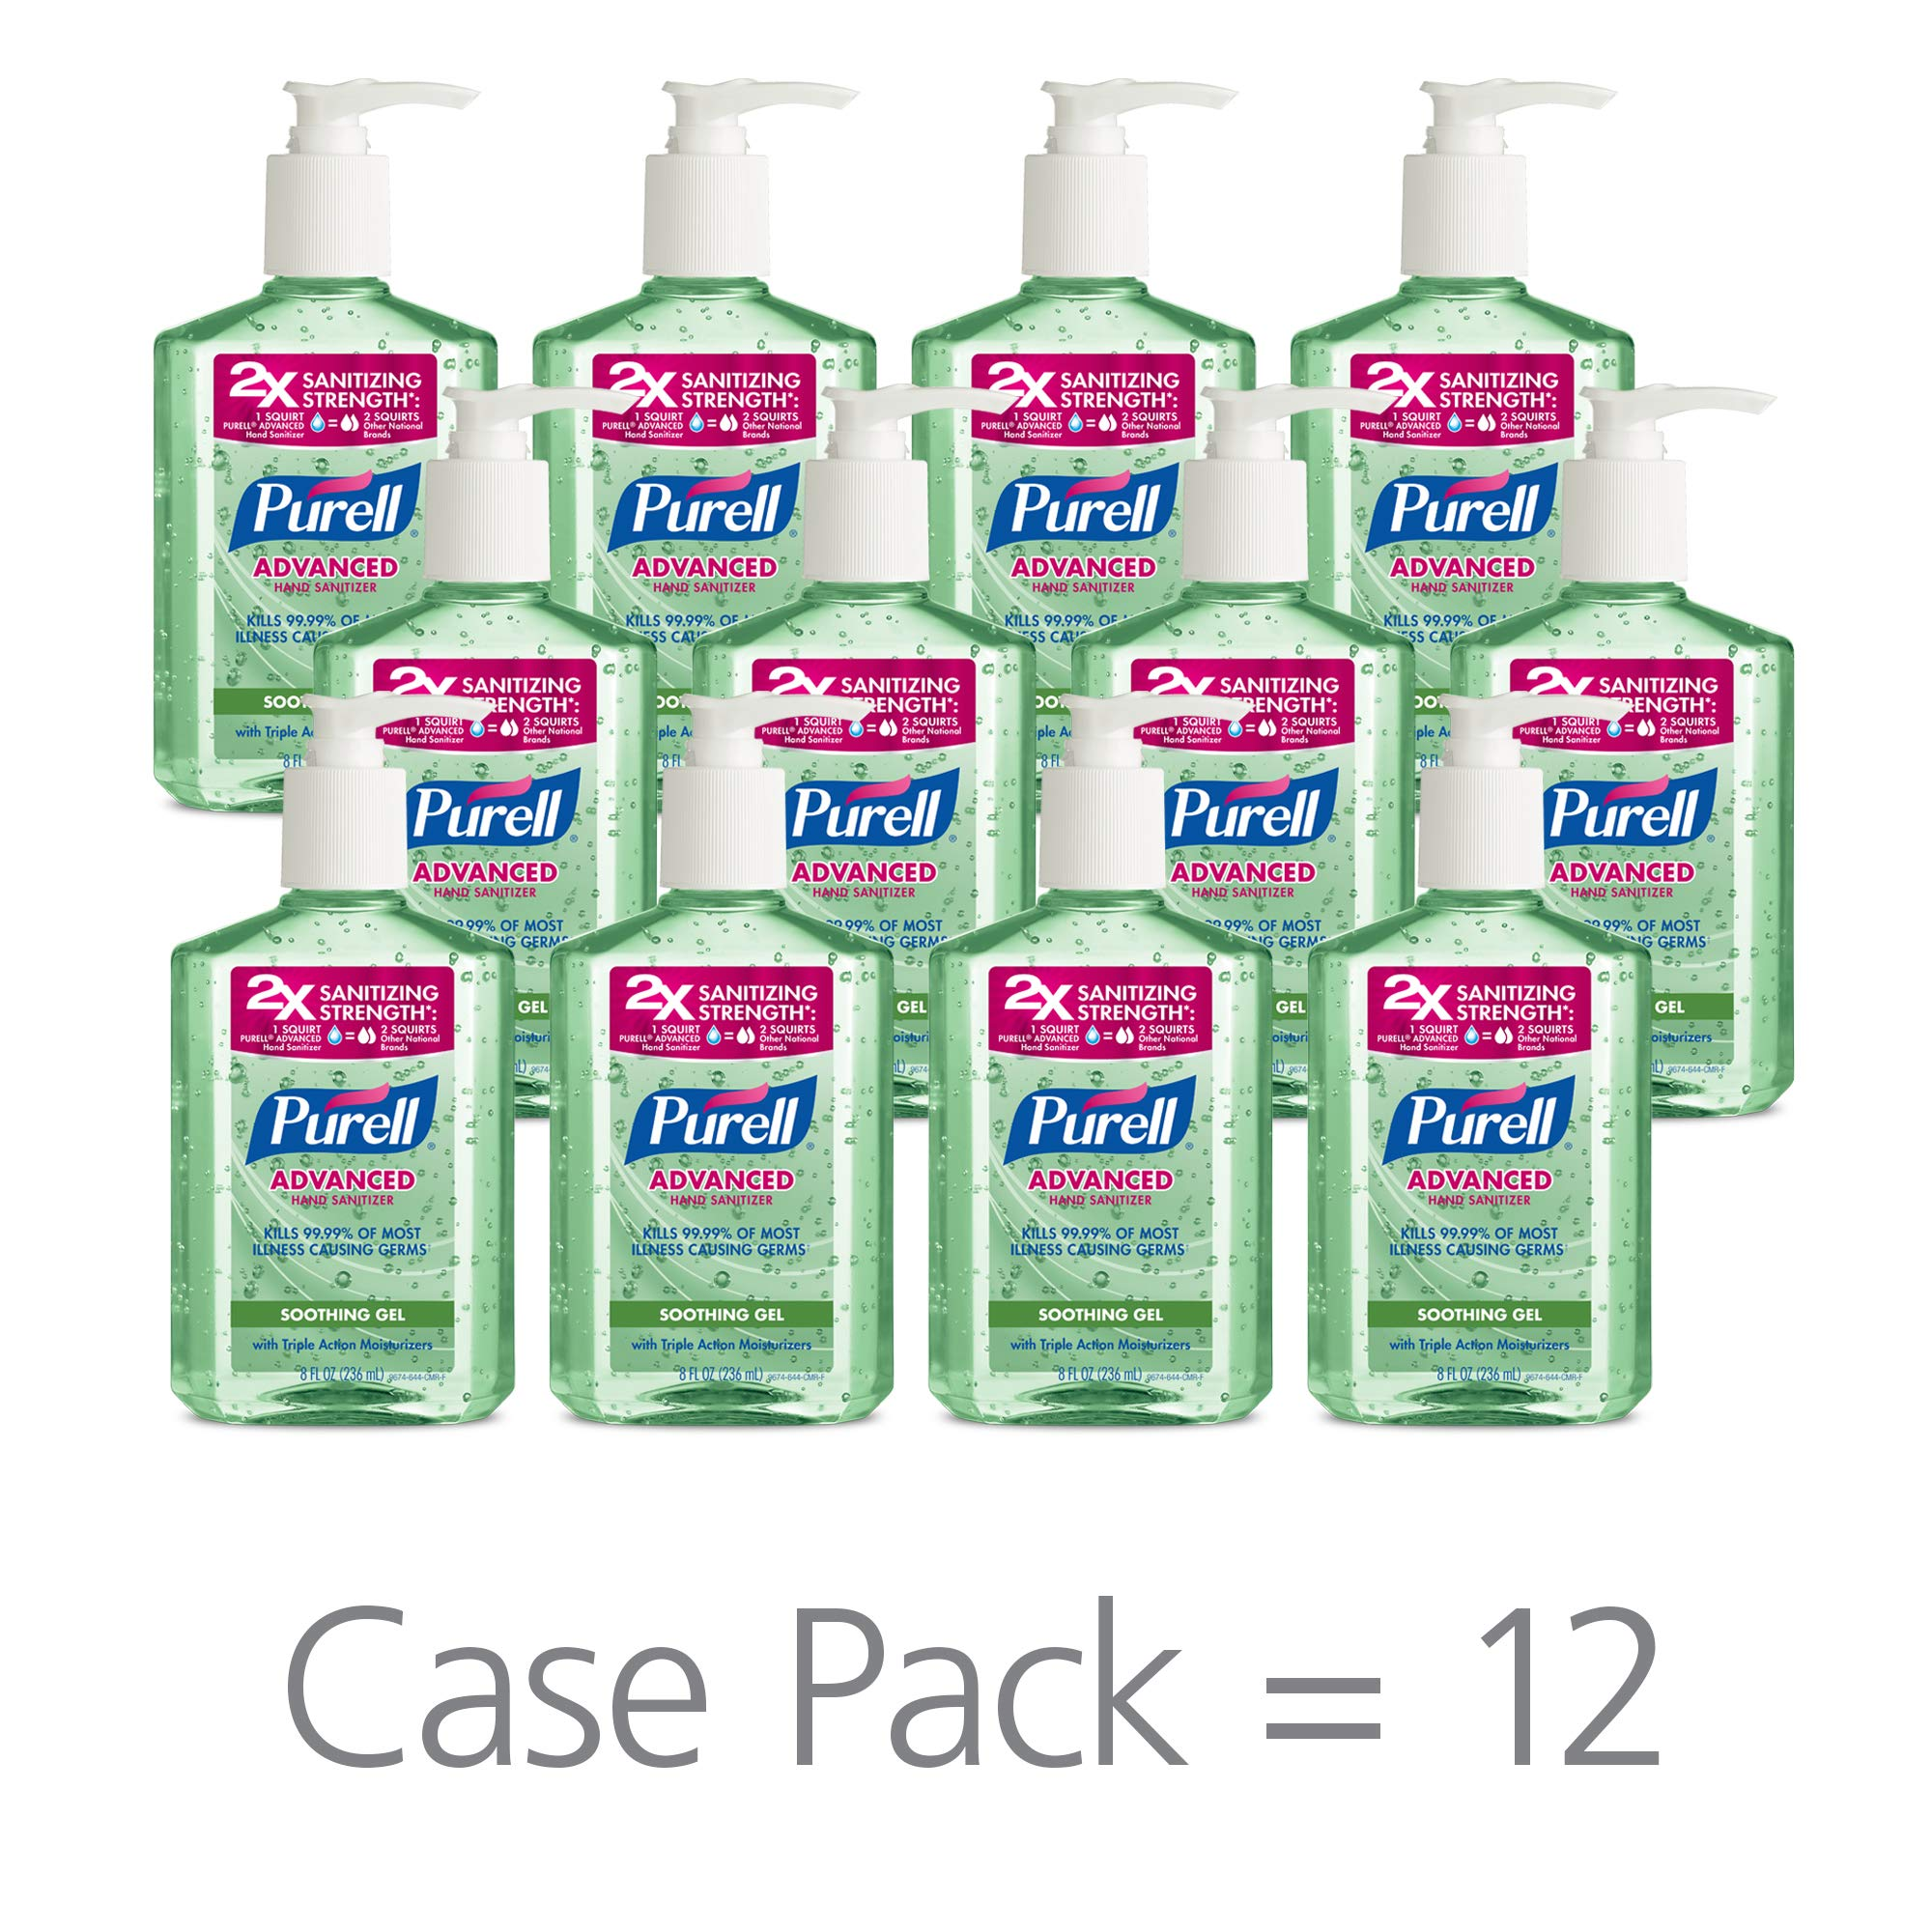 PURELL Advanced Hand Sanitizer Soothing Gel, Fresh scent, with Aloe and Vitamin E- 8 fl oz pump bottle (Pack of 12) - 3016-12-CMR by Purell